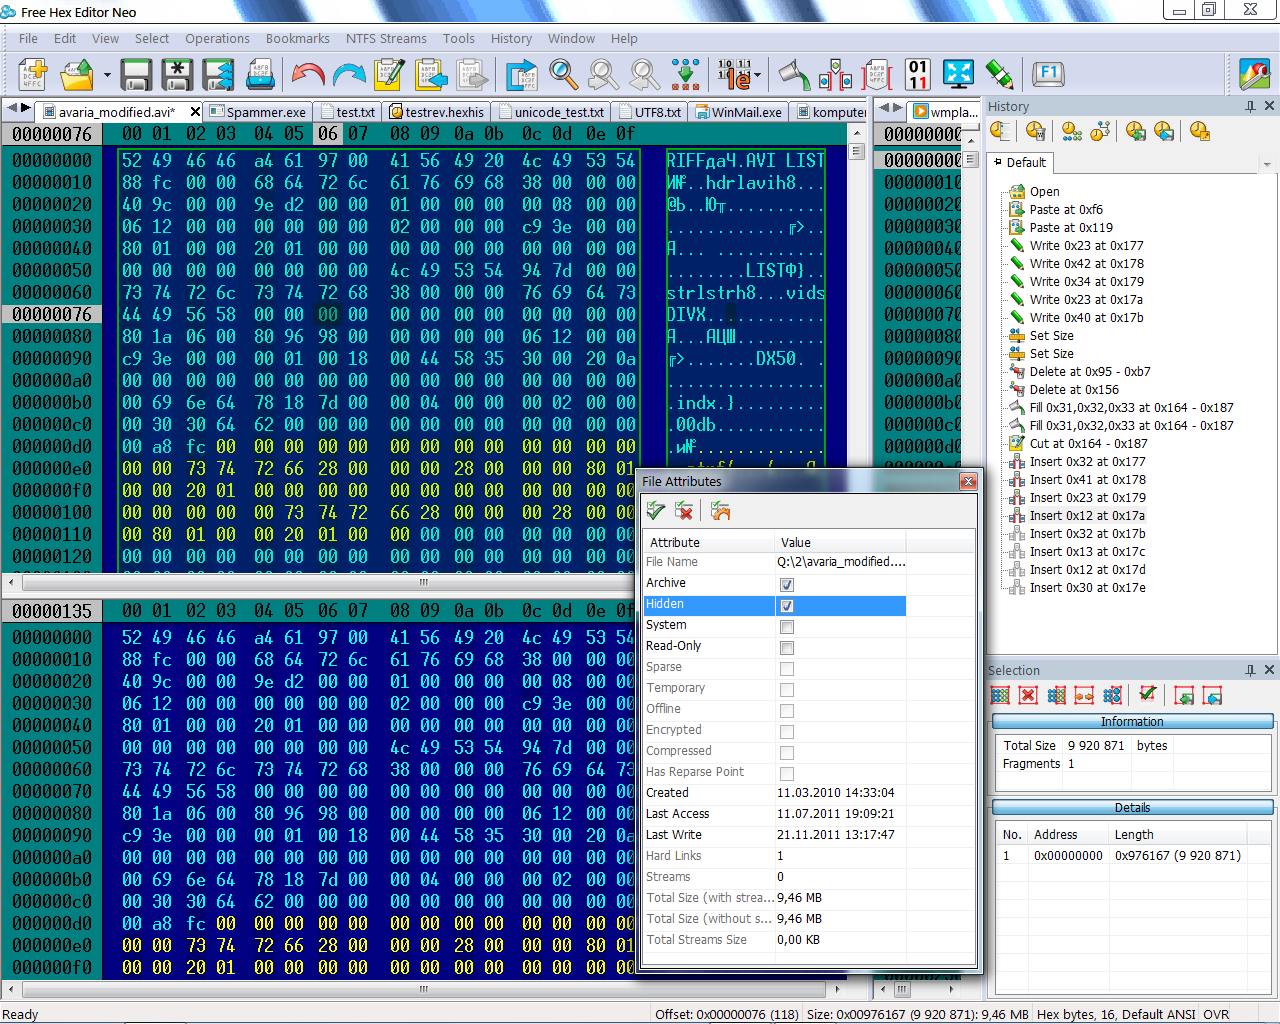 Online color viewer hex - Explore Even The Largest Files In Seconds With This Powerful Hex Editor